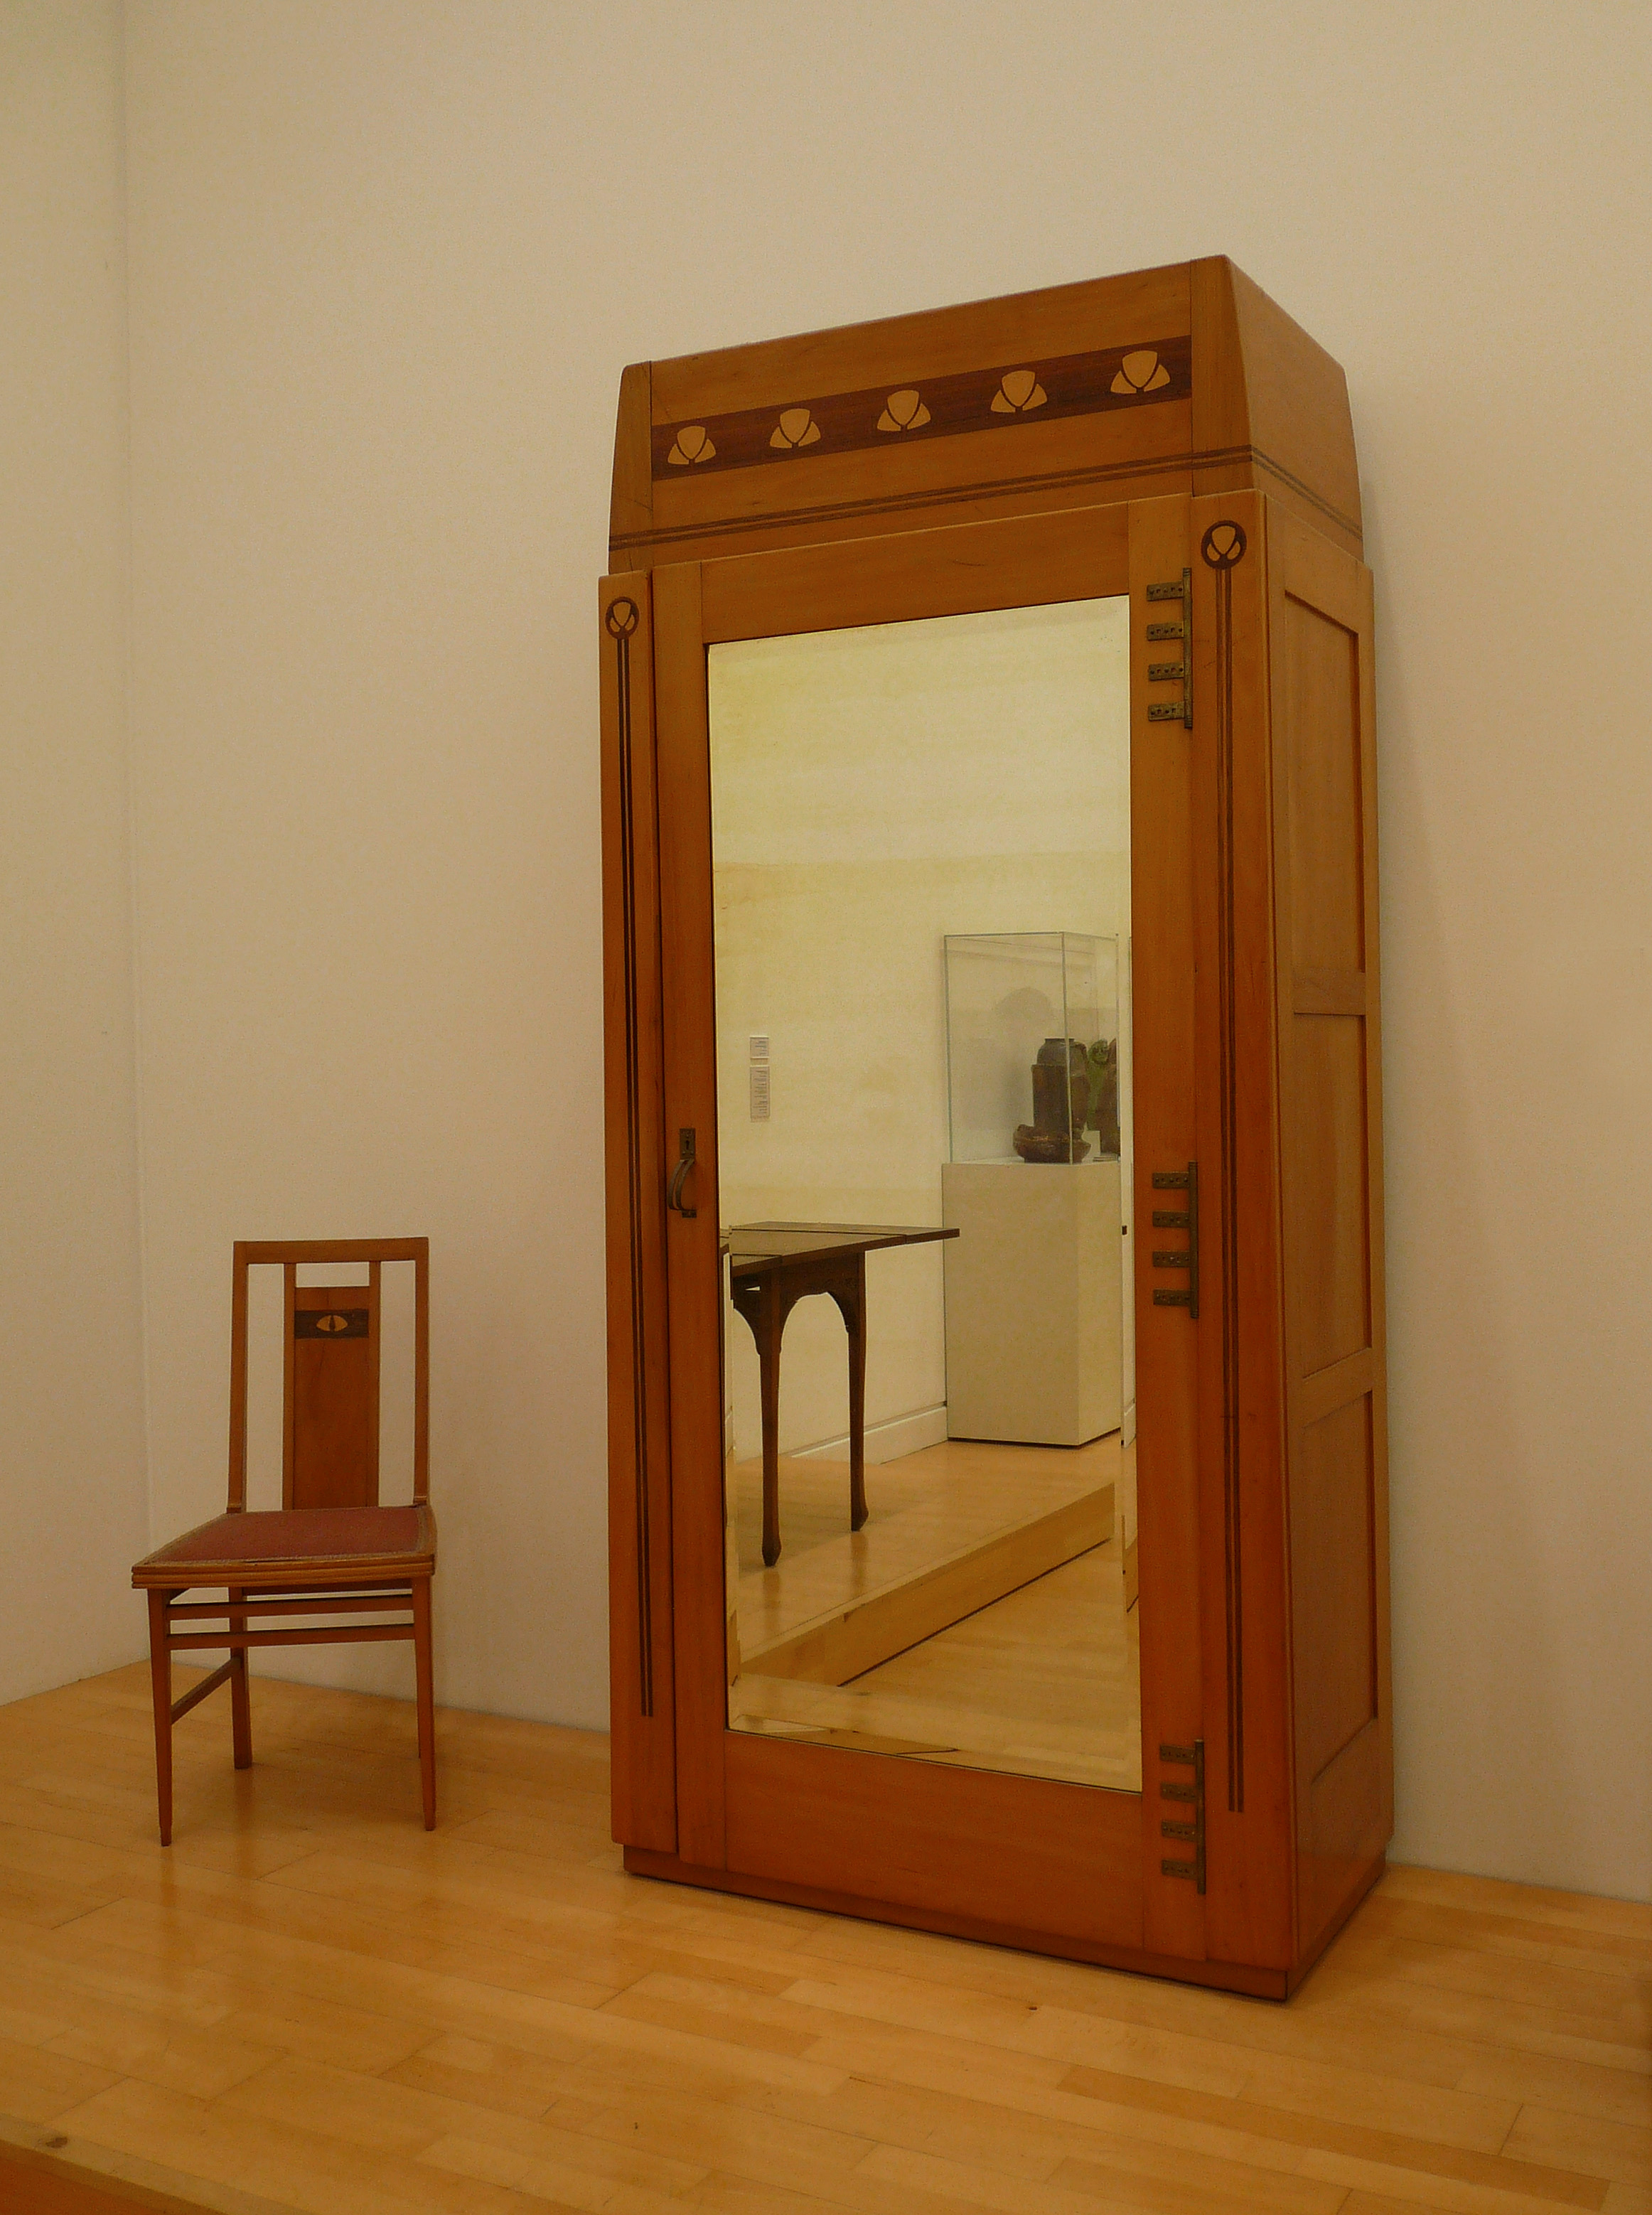 File:Gustave Serrurier-Bovy-Chaise et armoire.jpg - Wikimedia Commons